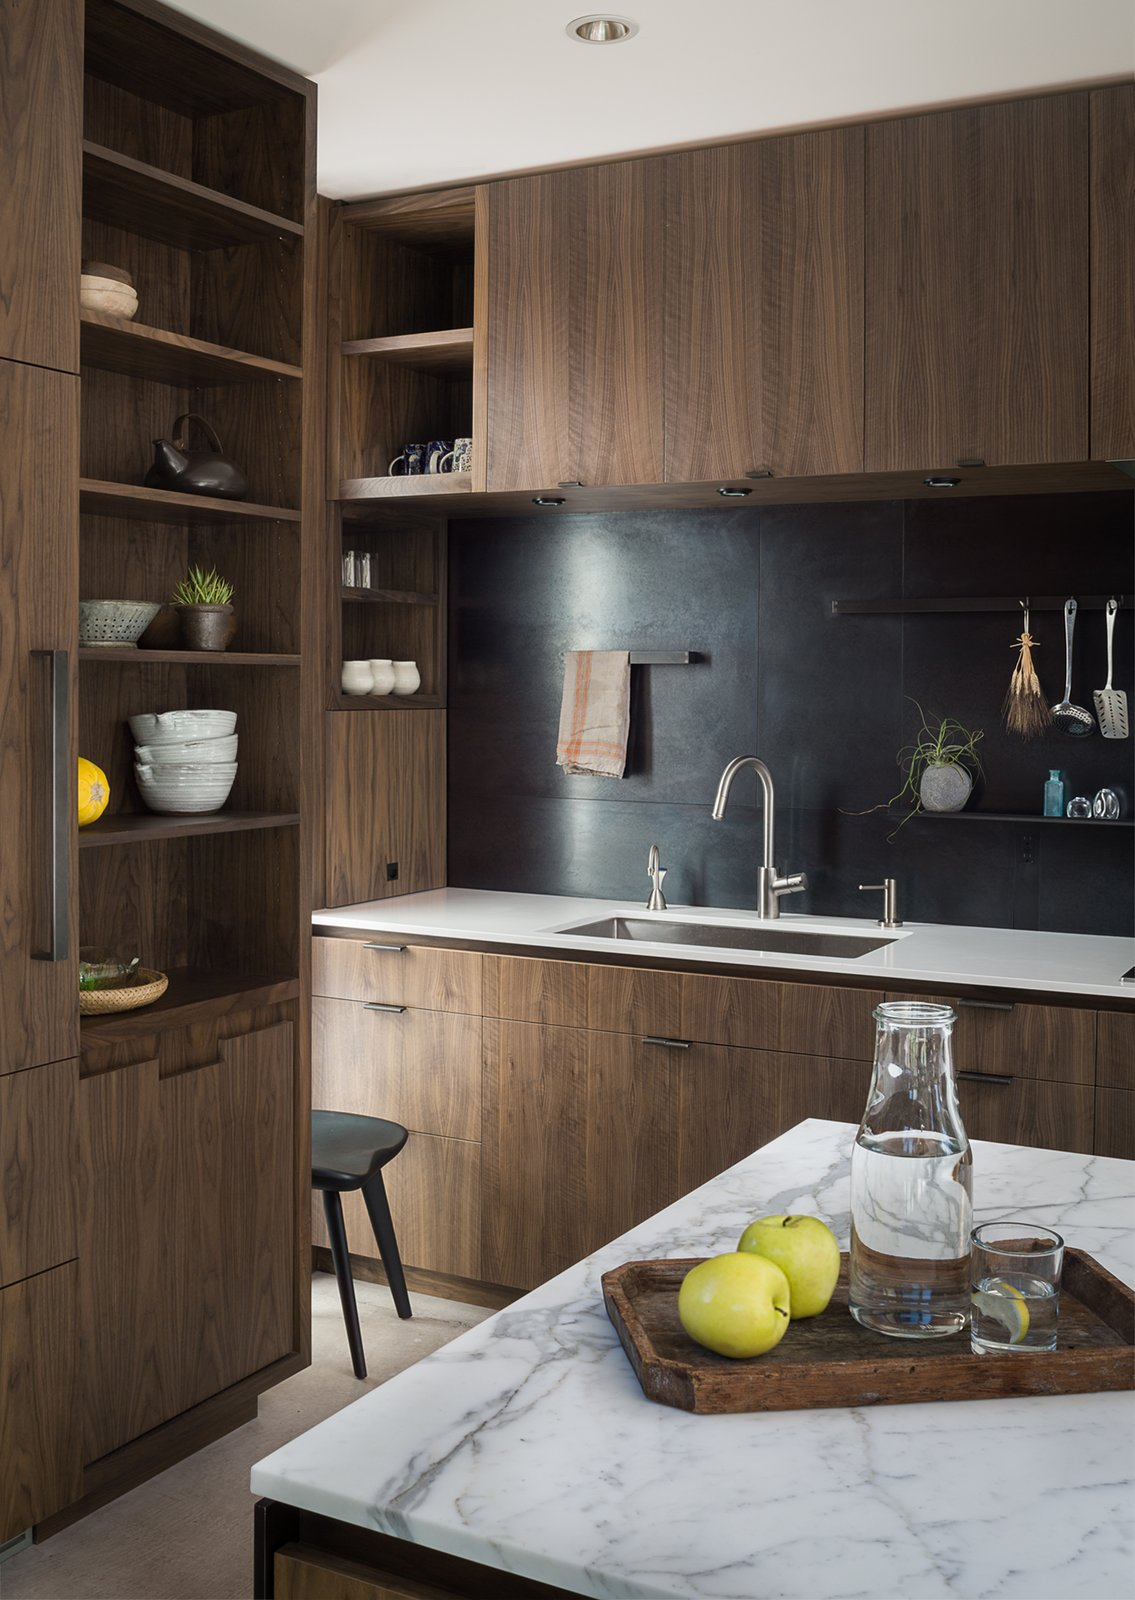 Helen Street by mw|works Tagged: Kitchen, Wood Cabinet, and Marble Counter.  Helen Street by mw|works